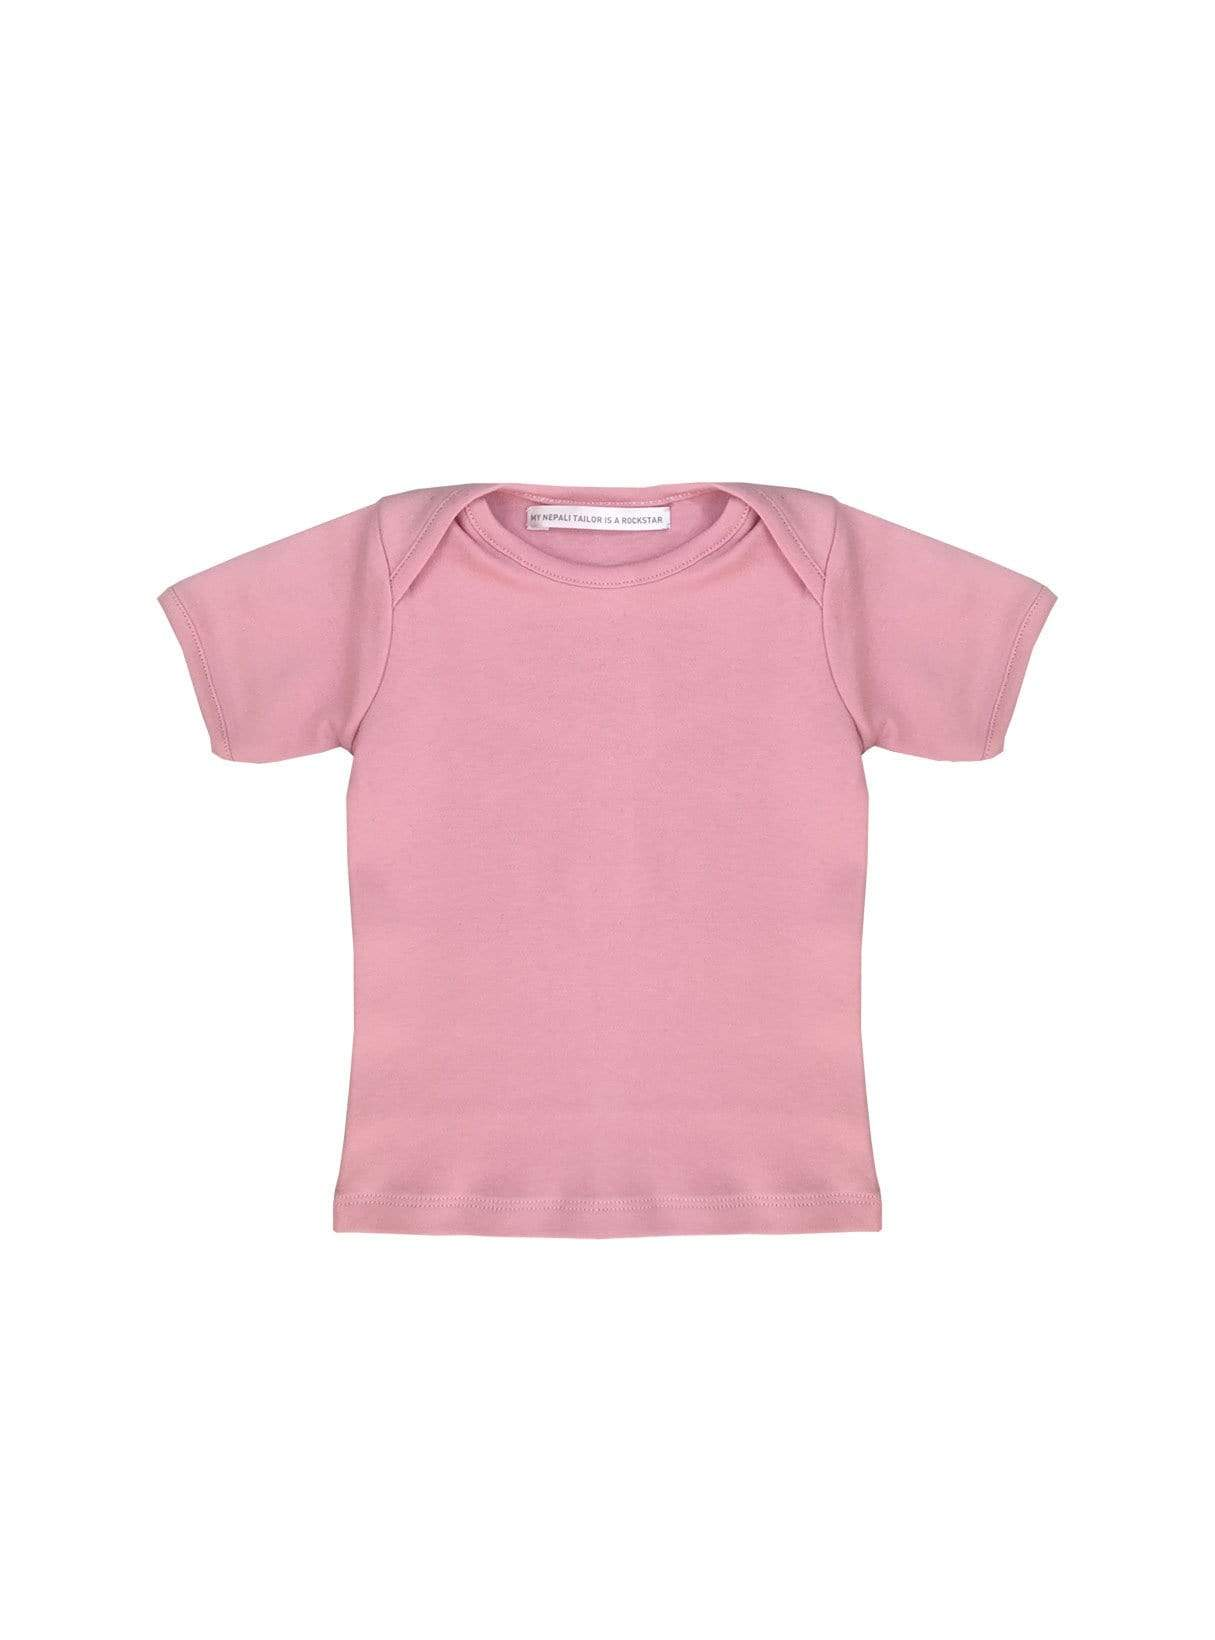 Baby t-shirt - pink